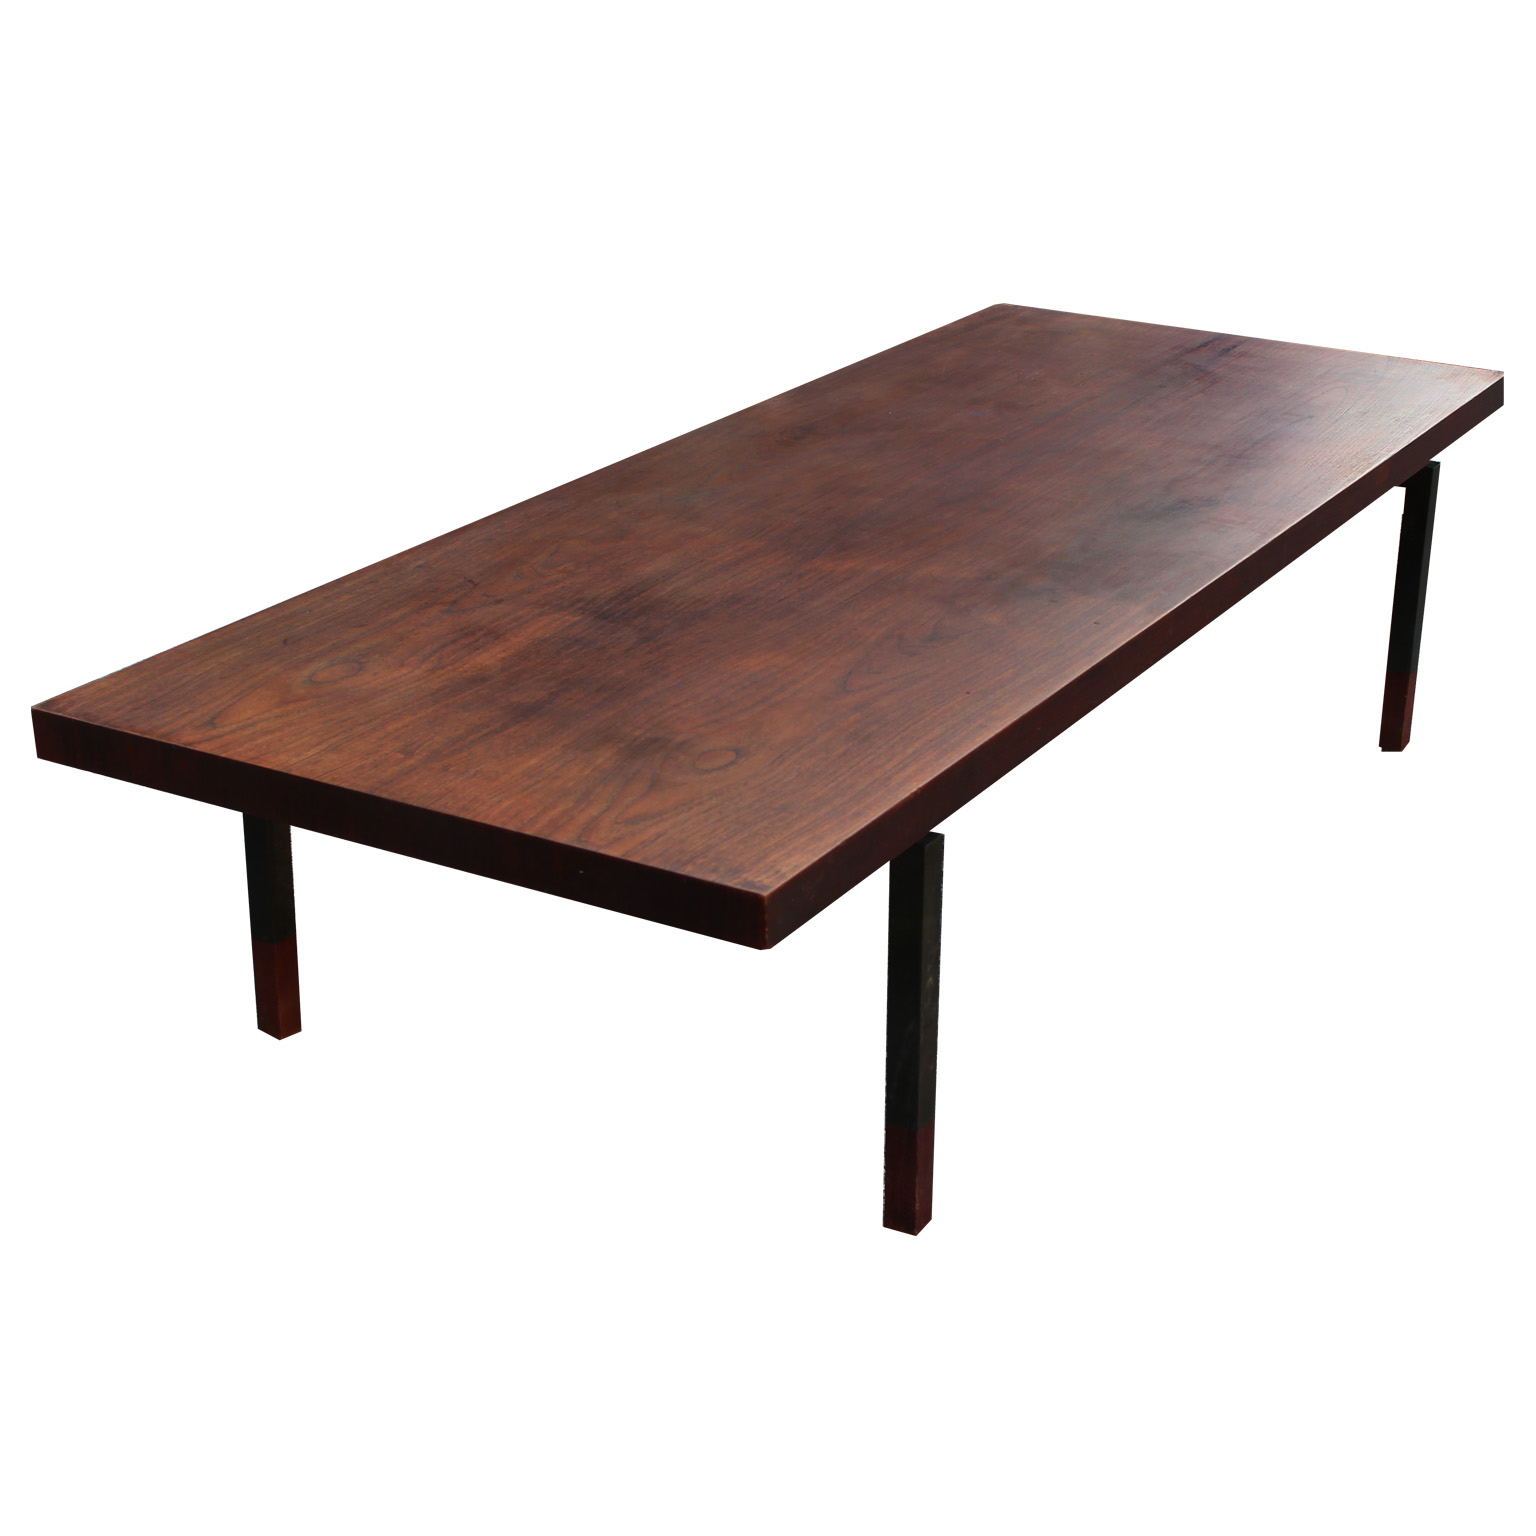 Johannes aasbjerg danish teak coffee table Furniture coffee tables